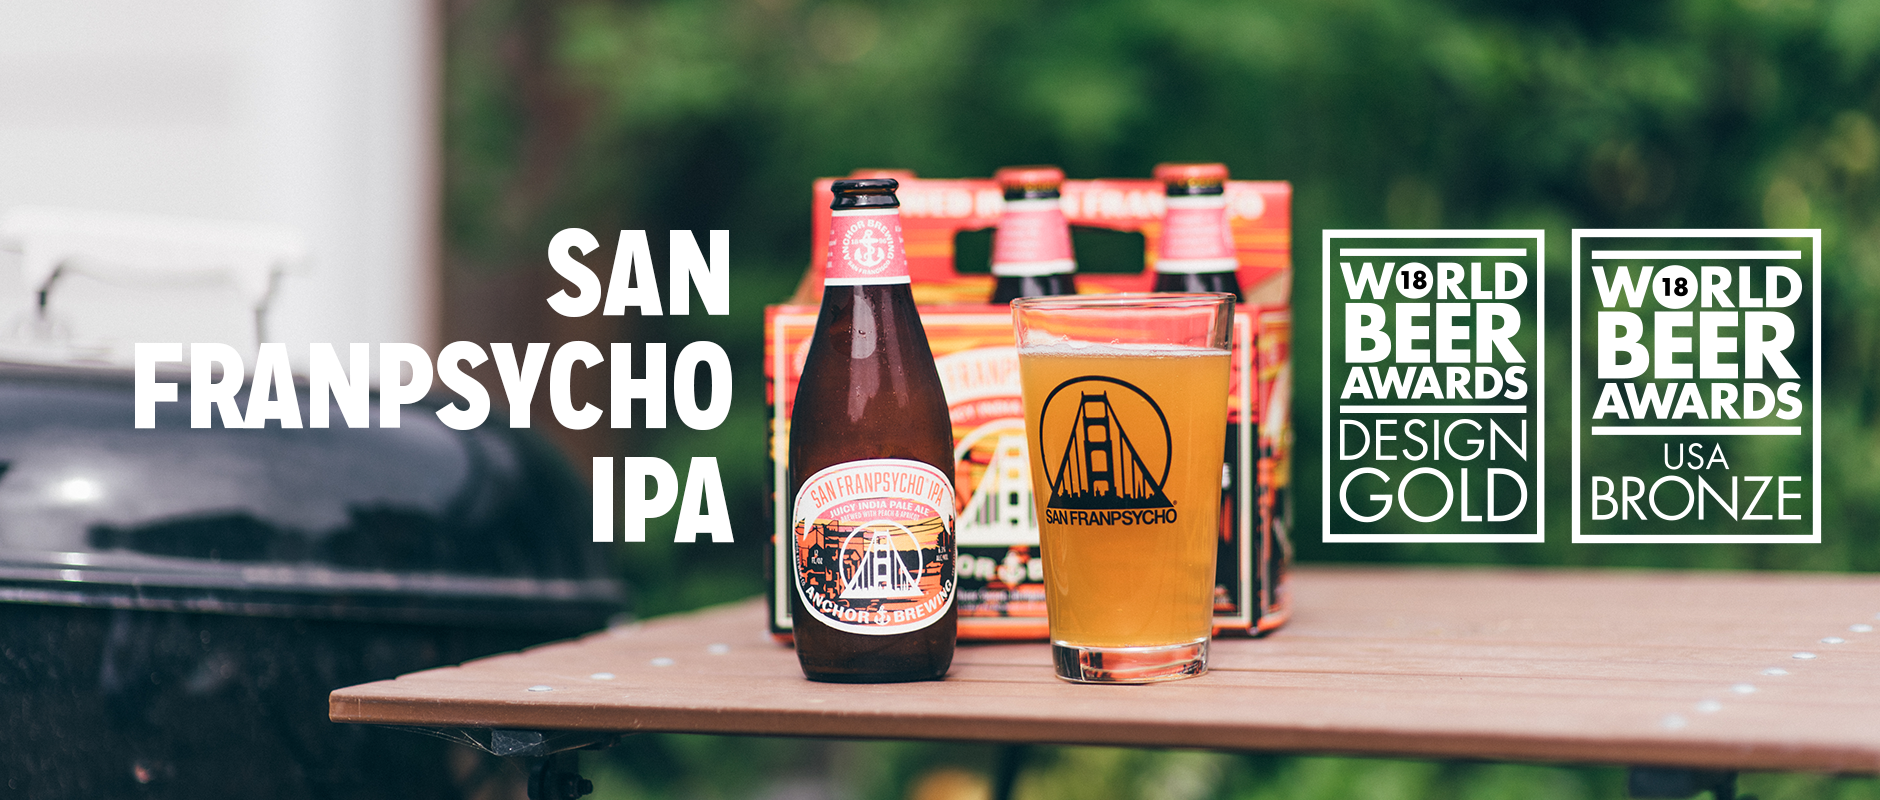 Wonderful We Are Proud To Announce That Our San Franpsycho IPA Took Home The Gold For  Best Label Design As Well As Bronze For Taste At This Yearu0027s World Beer  Awards ...